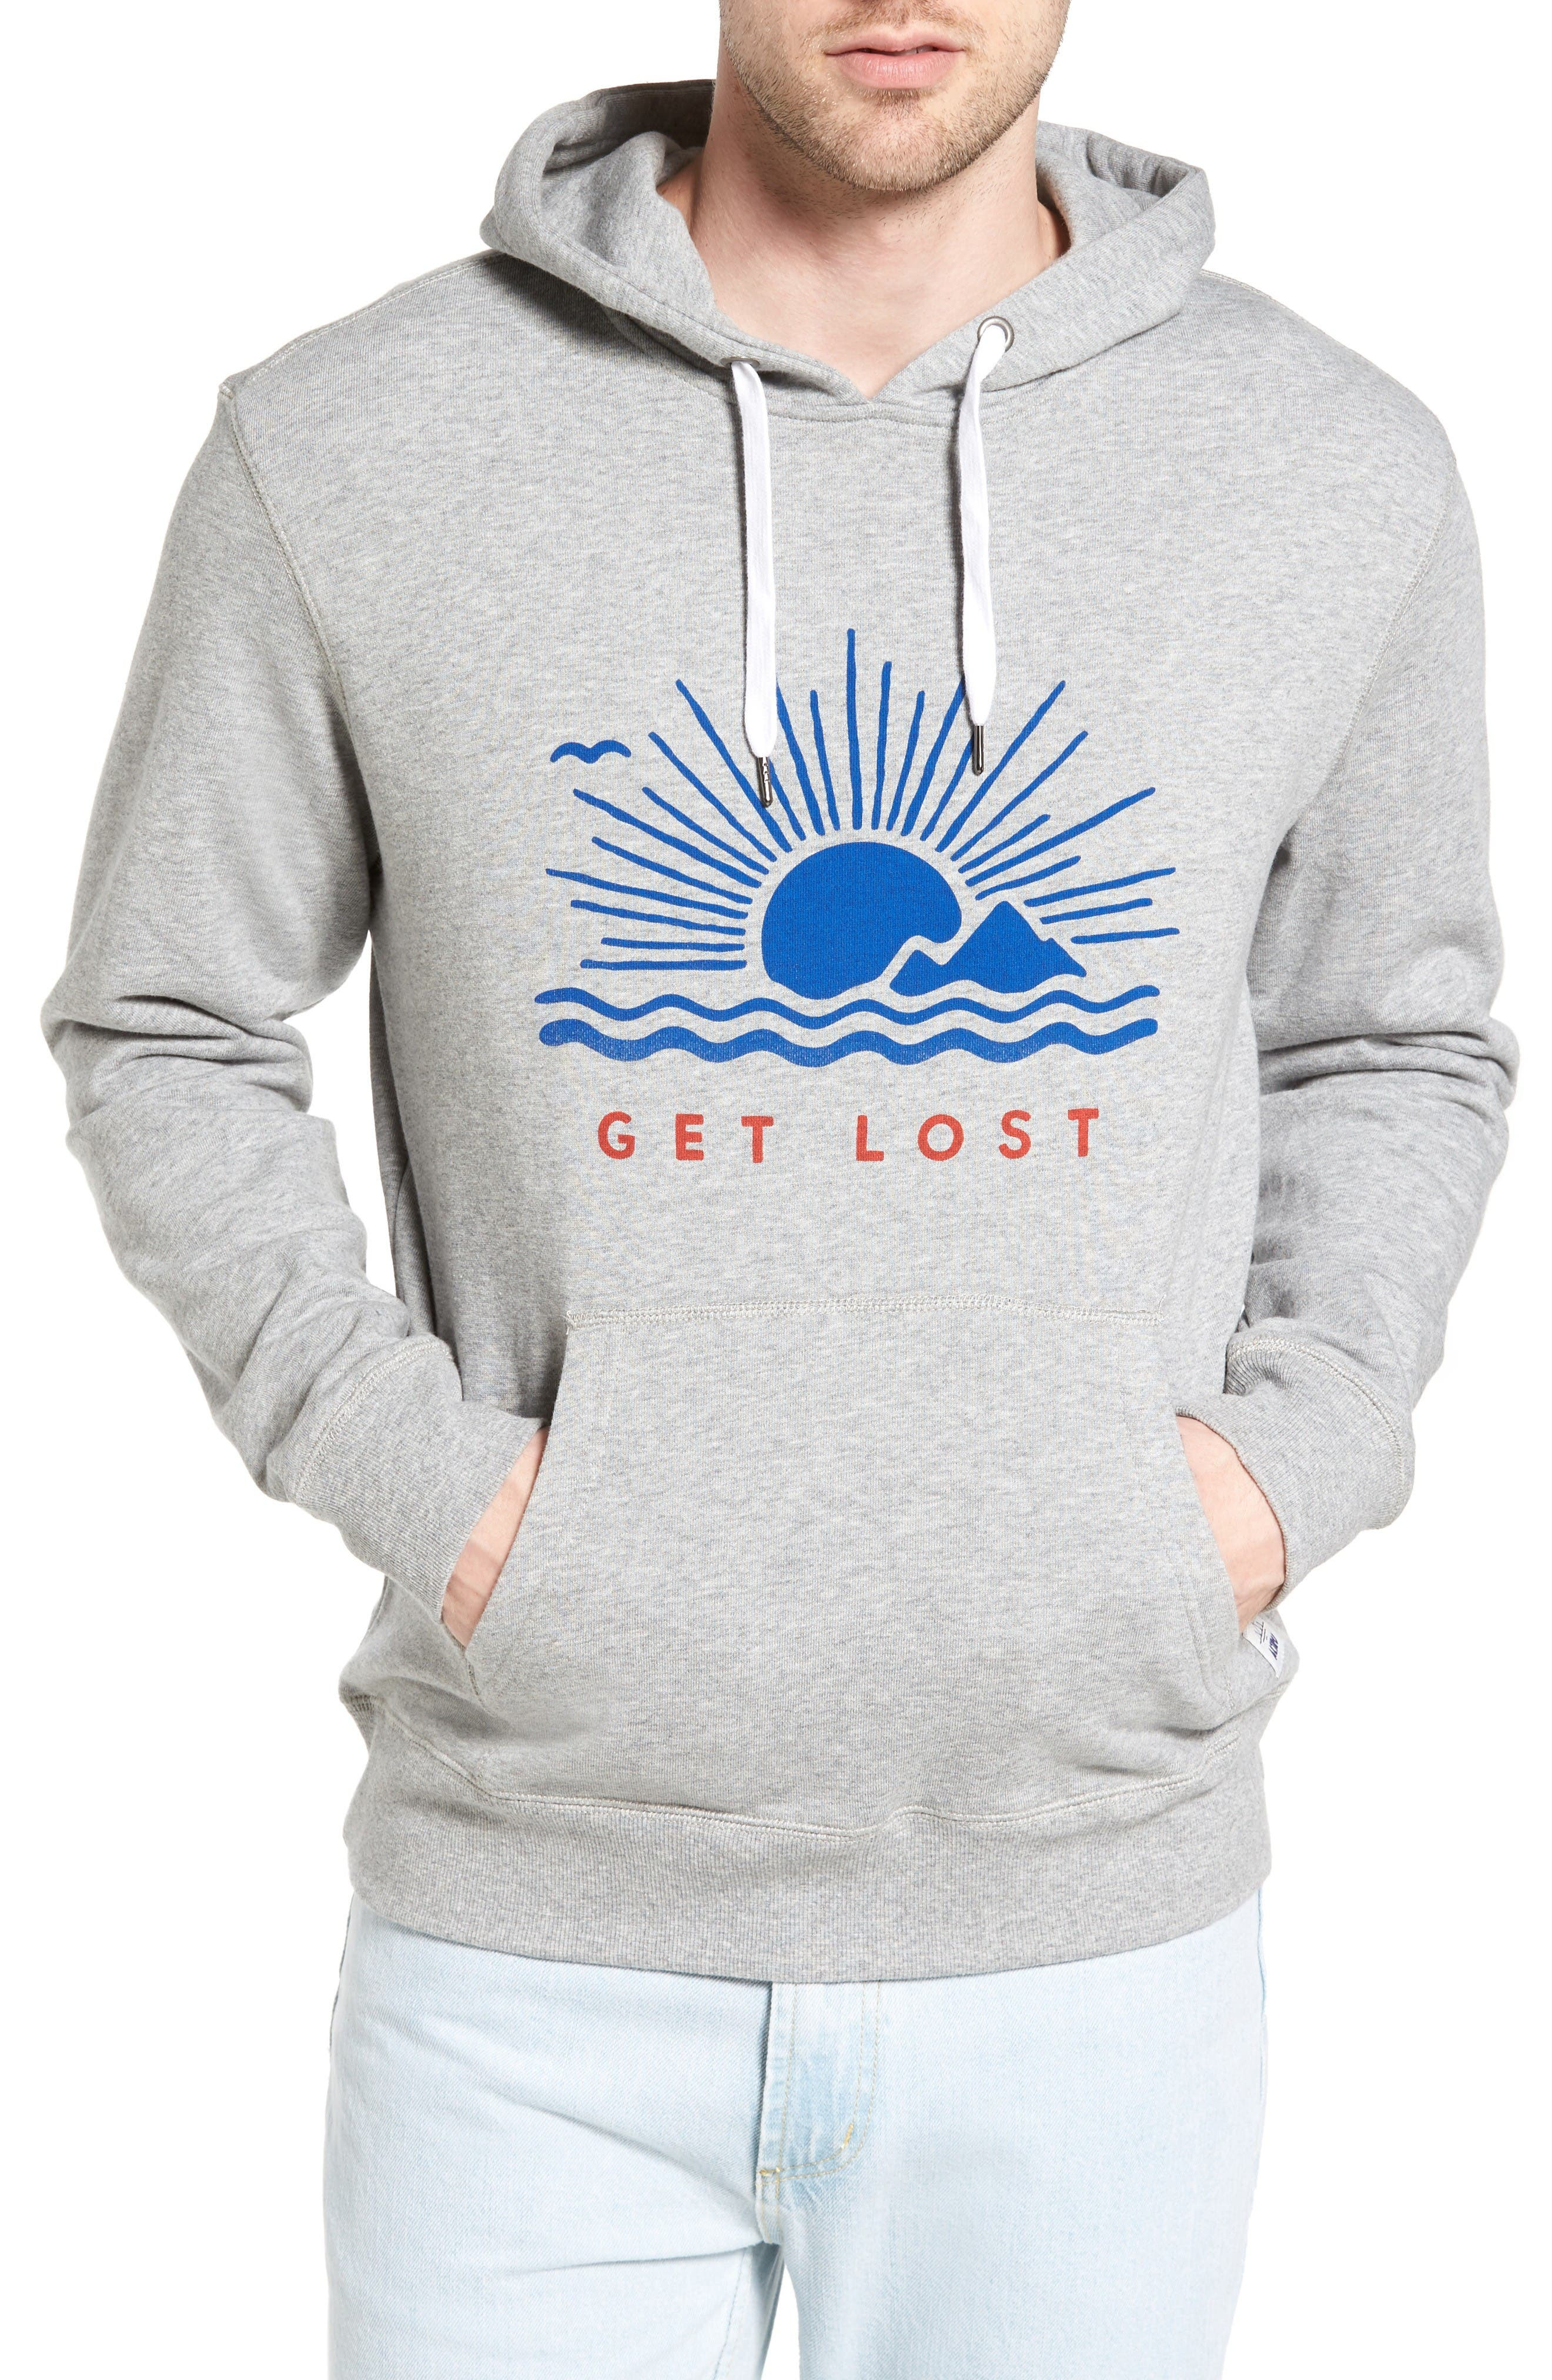 Main Image - Altru Get Lost French Terry Hoodie